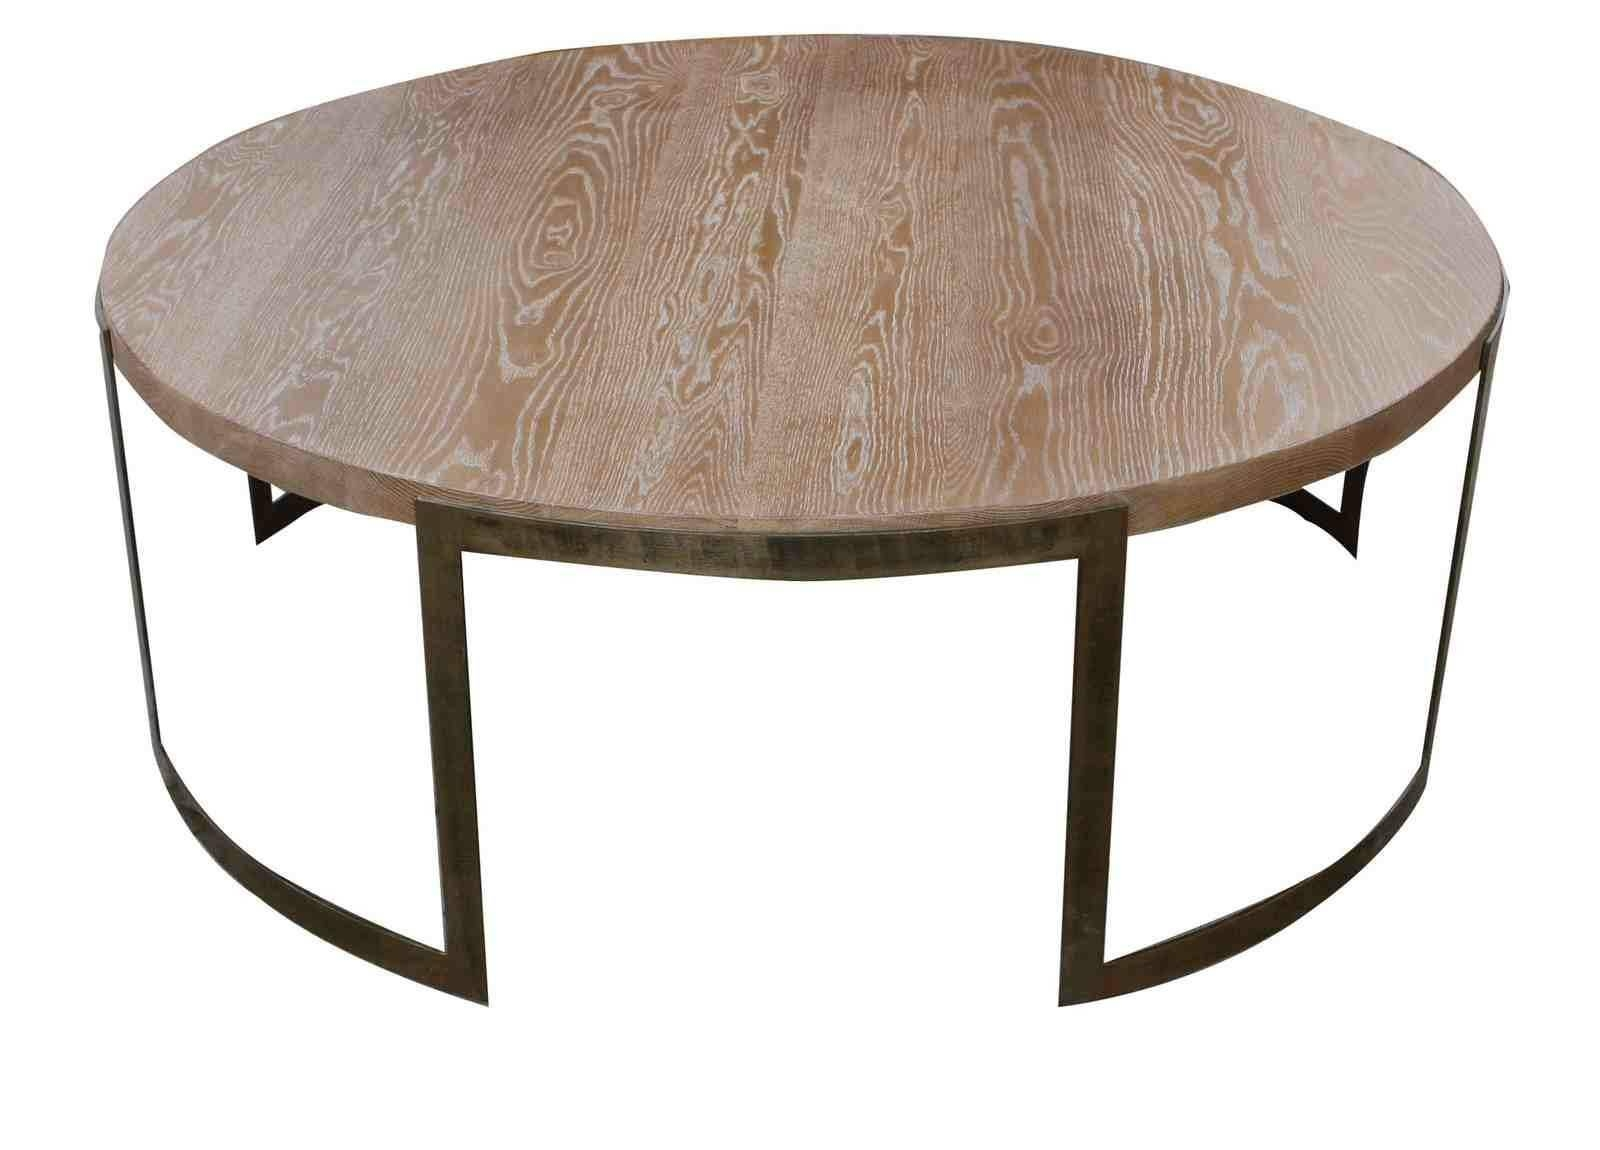 Coffee Table: Enchanting Round Industrial Coffee Table Ideas pertaining to Industrial Round Coffee Tables (Image 2 of 15)